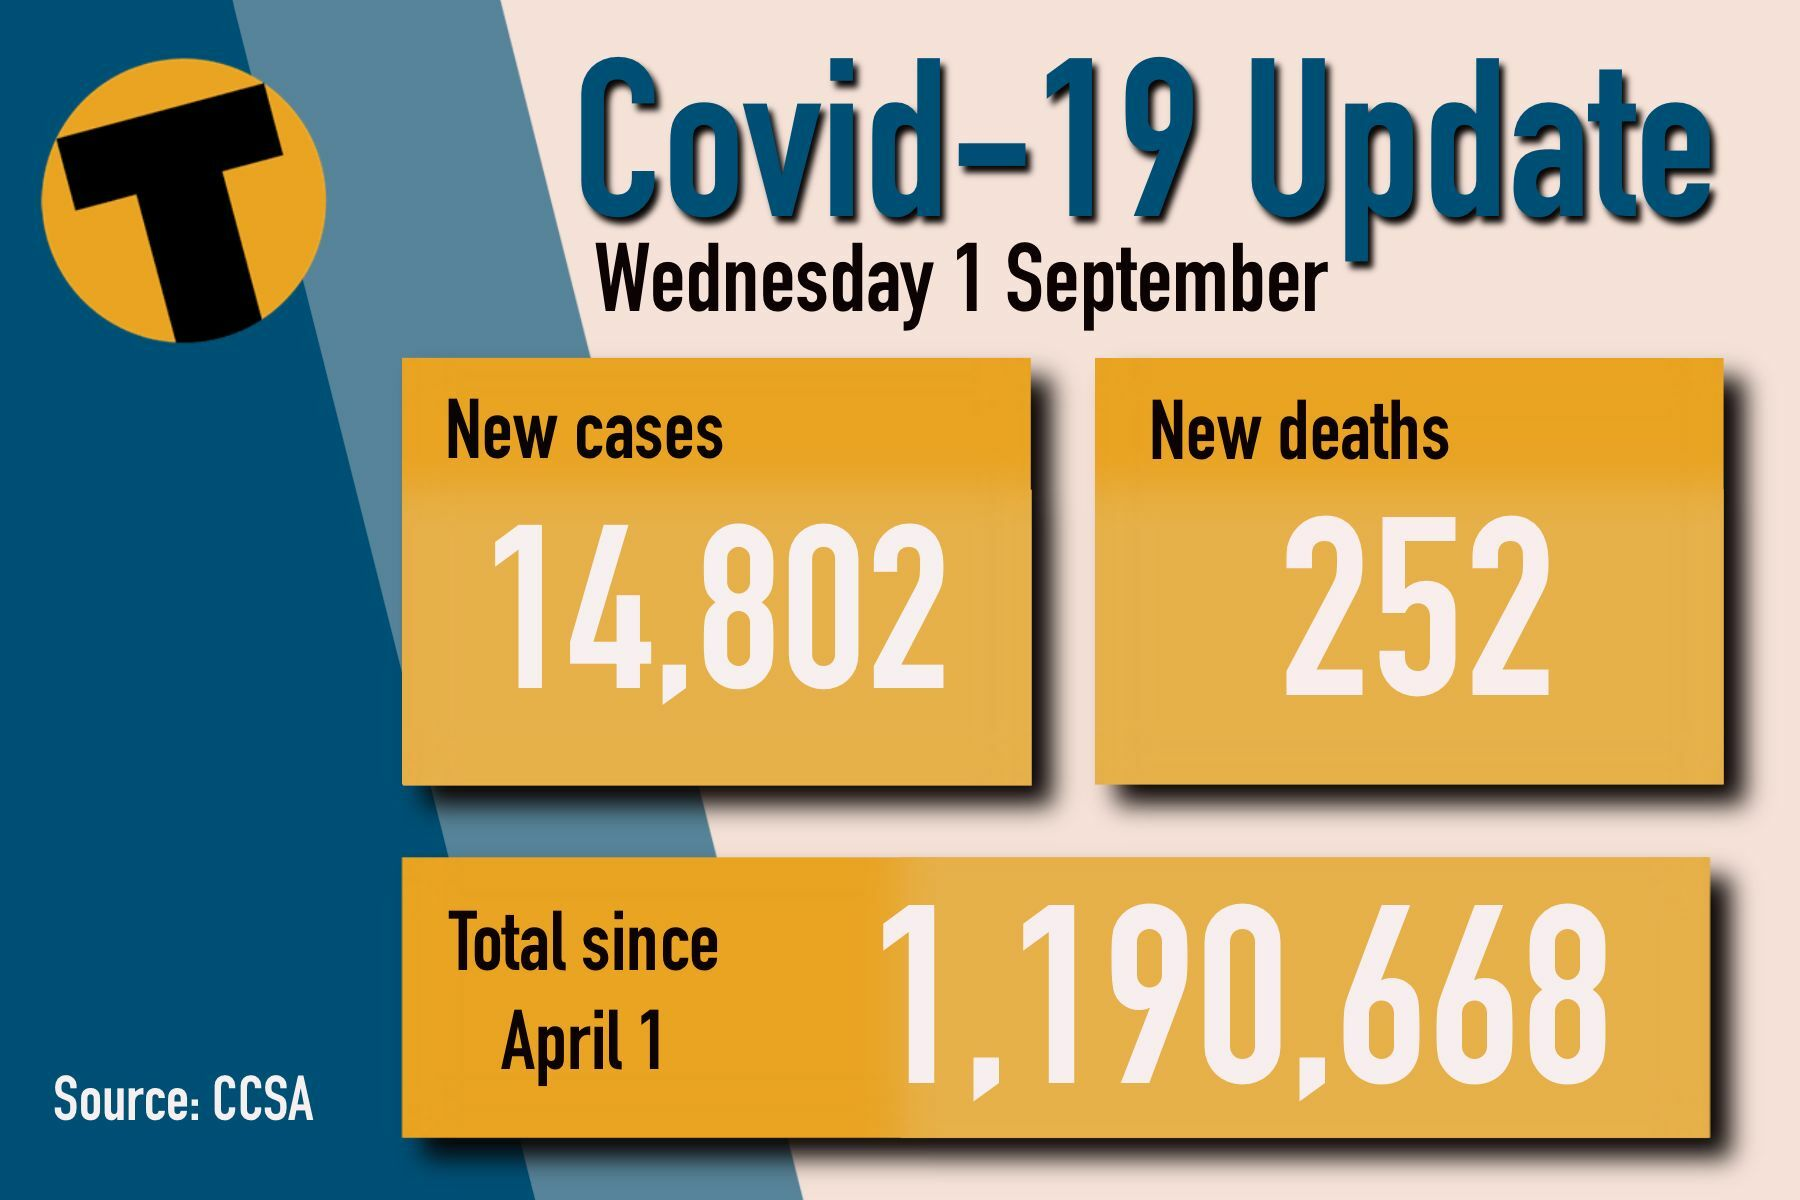 Wednesday Covid Update: 252 deaths and 14,802 new cases | News by Thaiger